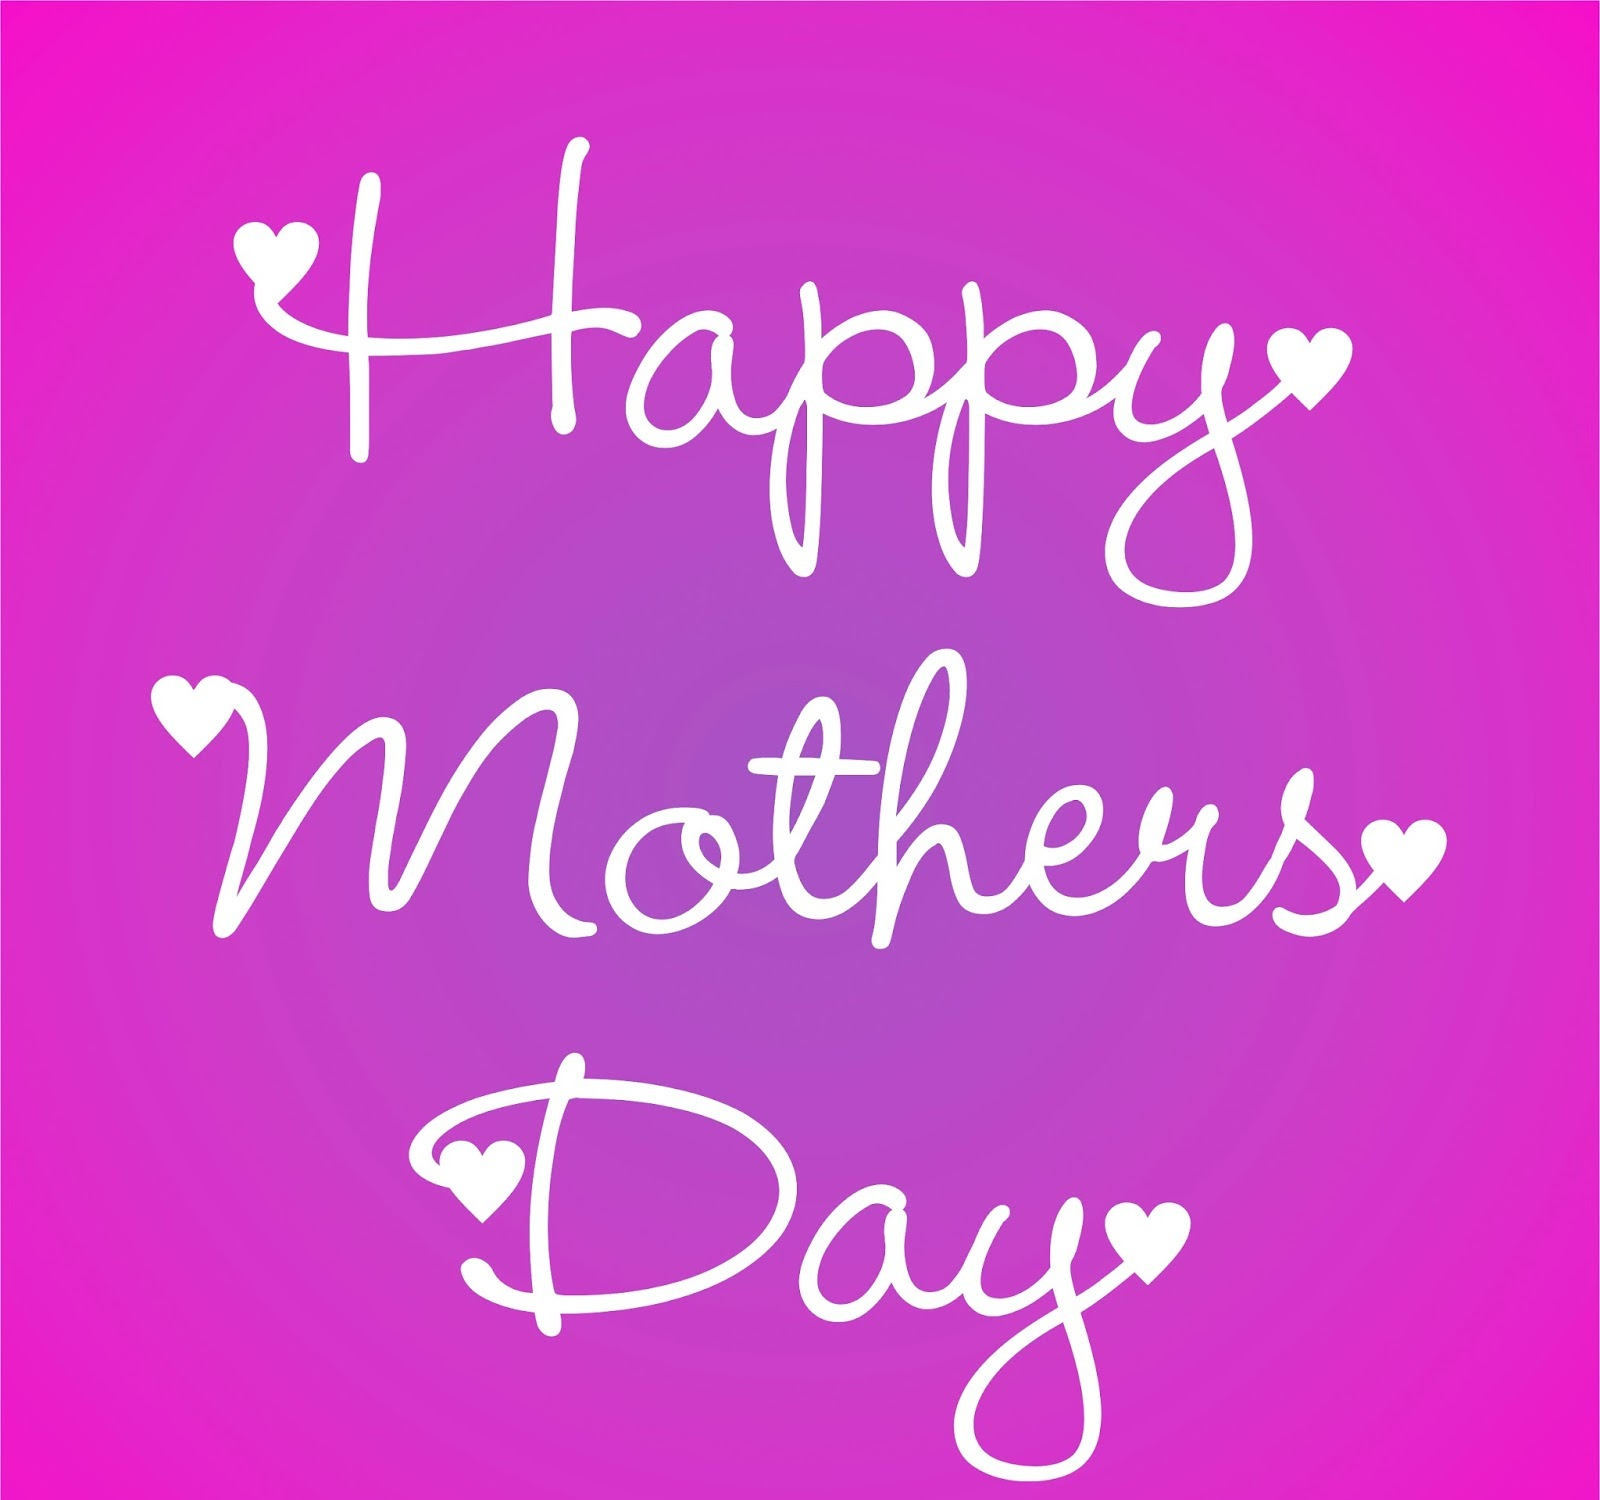 Happy Day Images And Quotes: Happy Mother's Day Quotes 2017